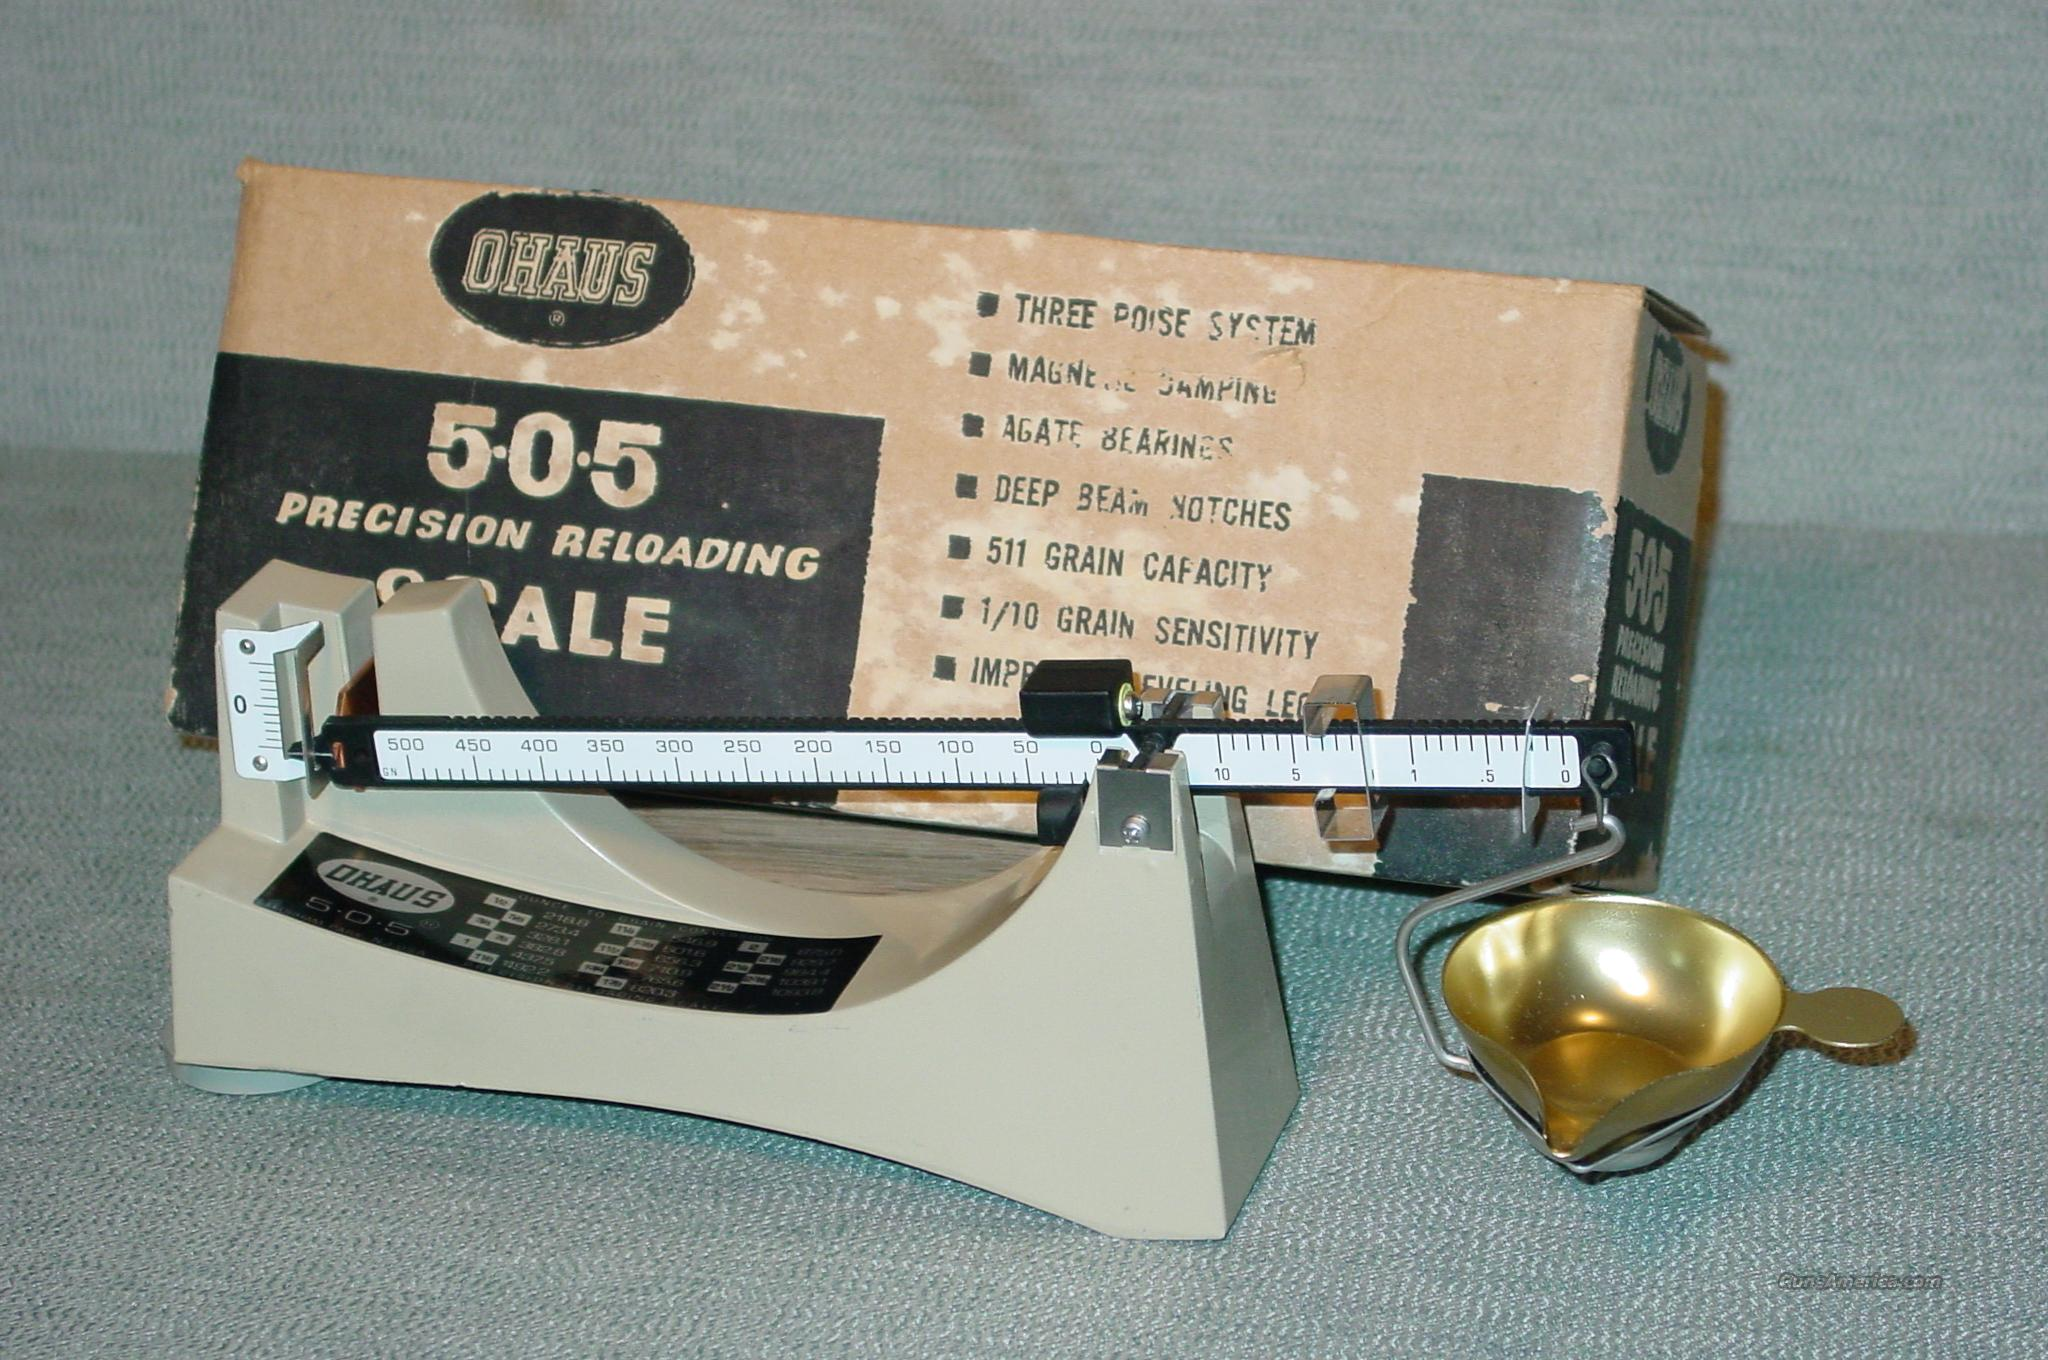 Ohaus 505 Precision Reloading Scale For Sale